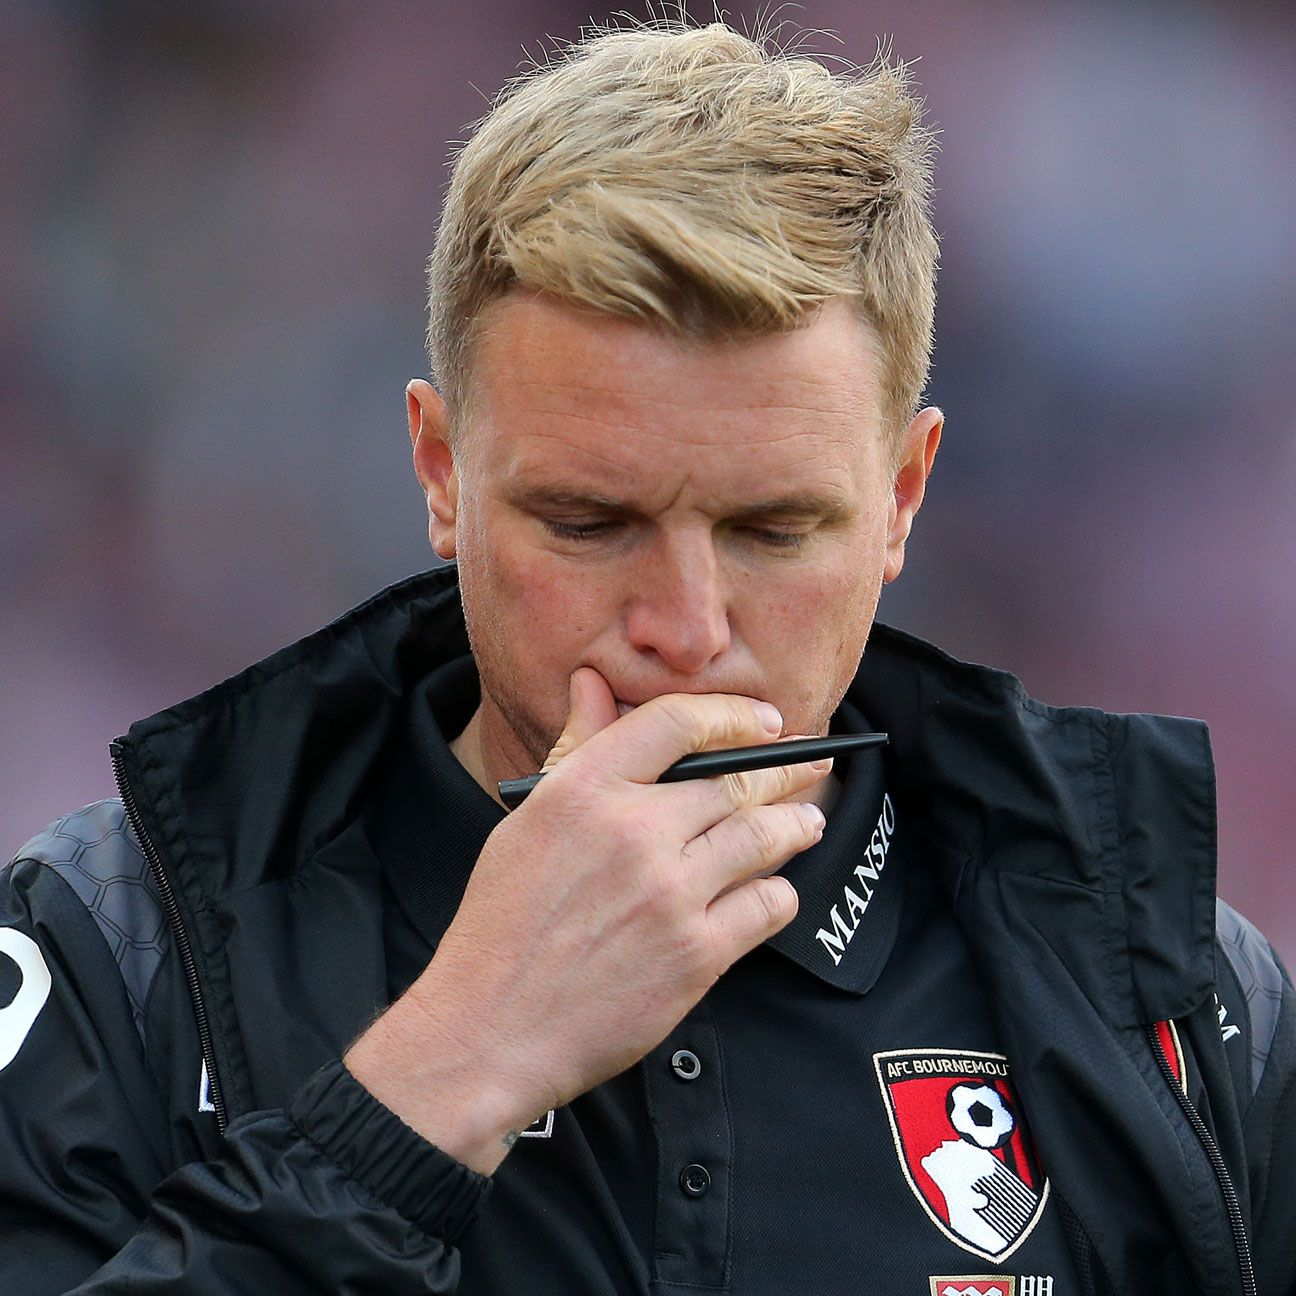 Eddie Howe's Bournemouth currently sit 17th in the Premier League table.